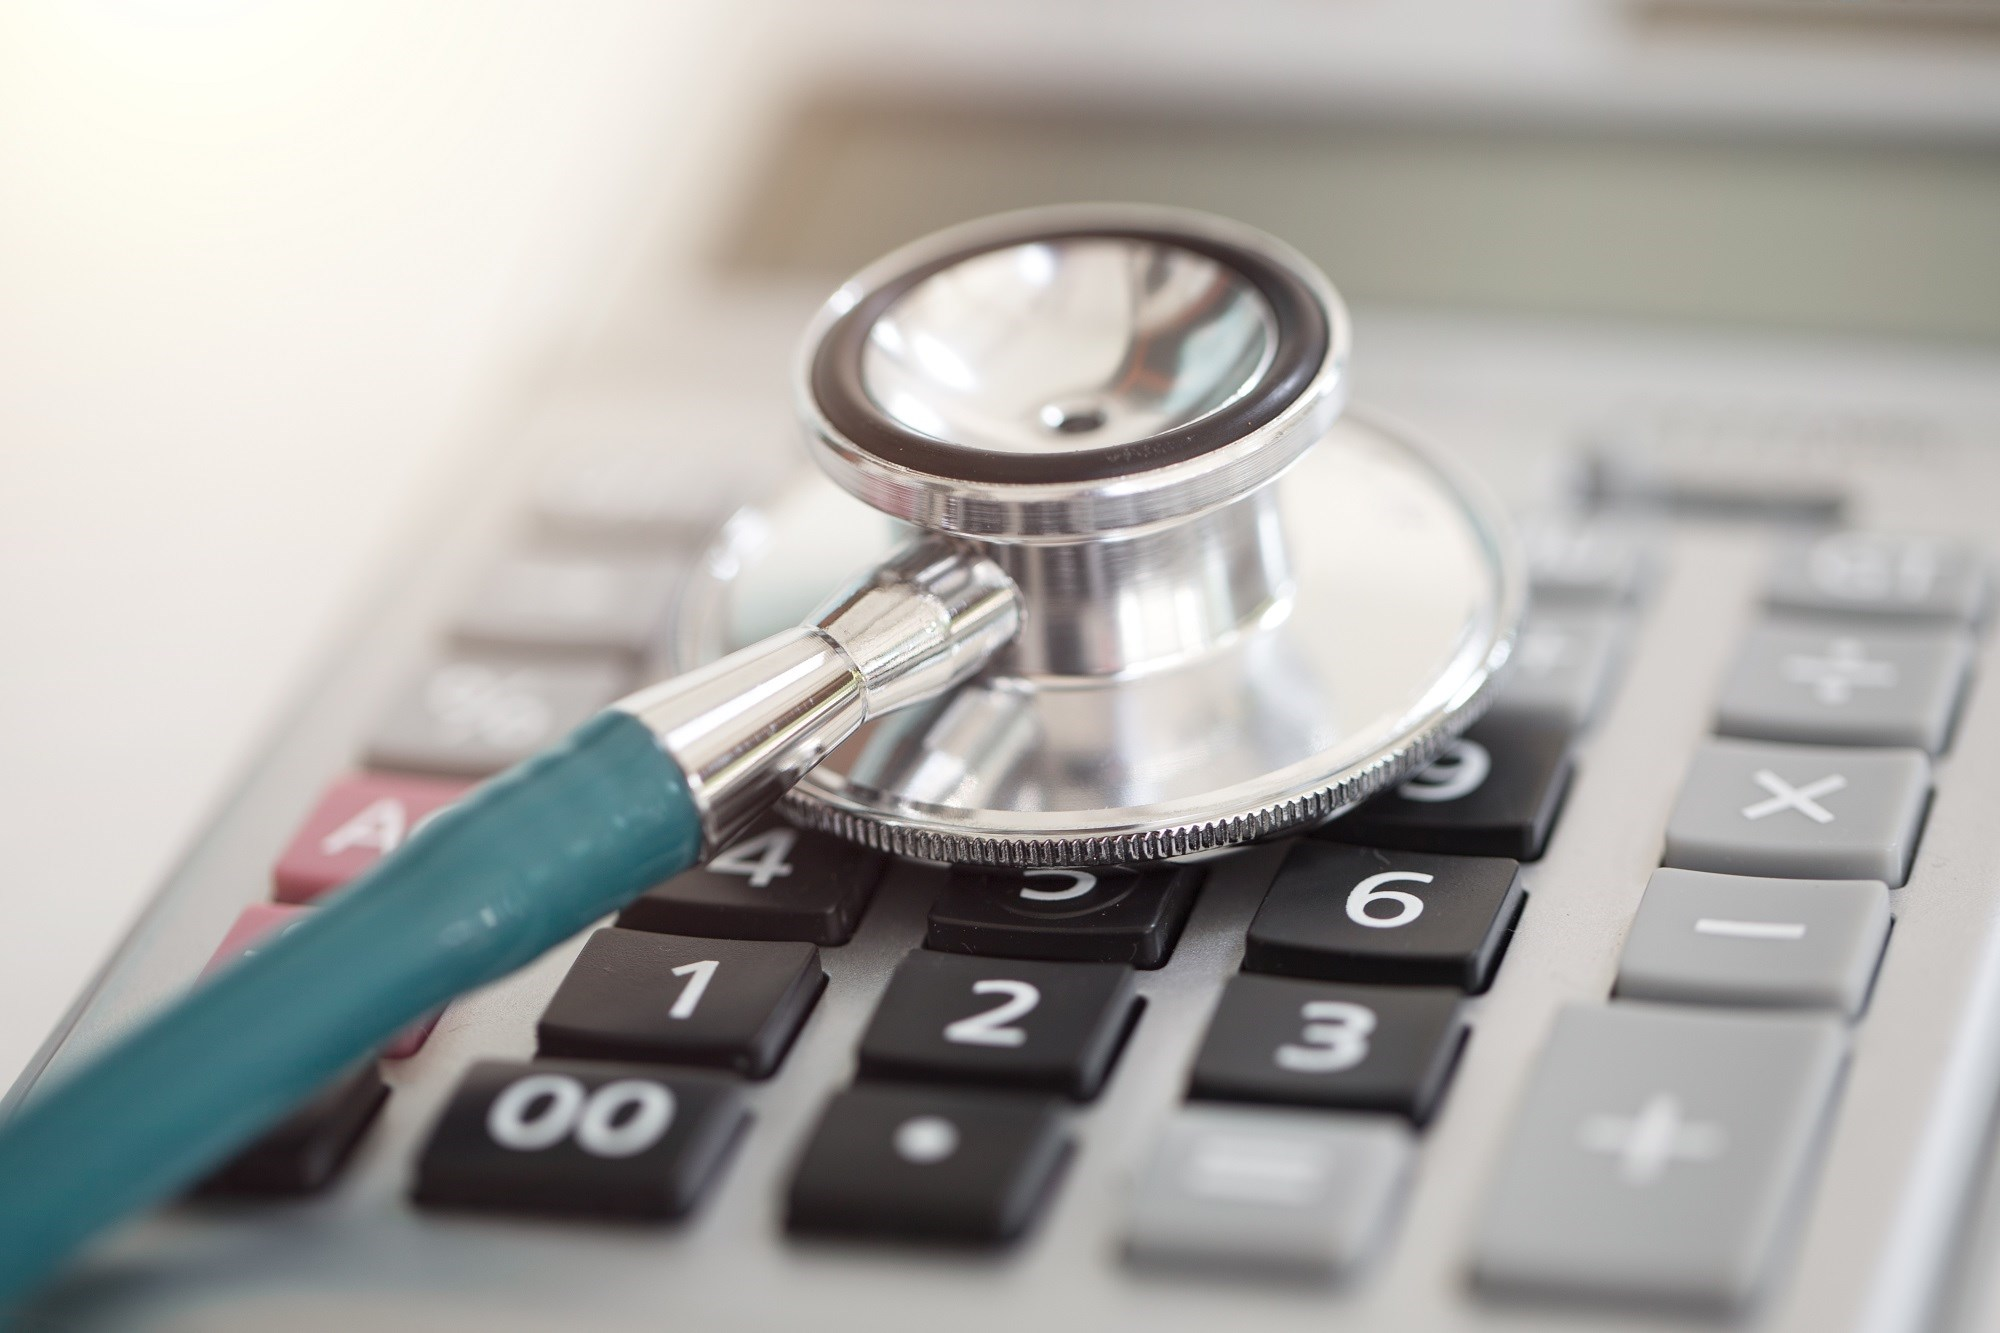 Costs Higher for Patients With Comorbid Noncommunicable Diseases